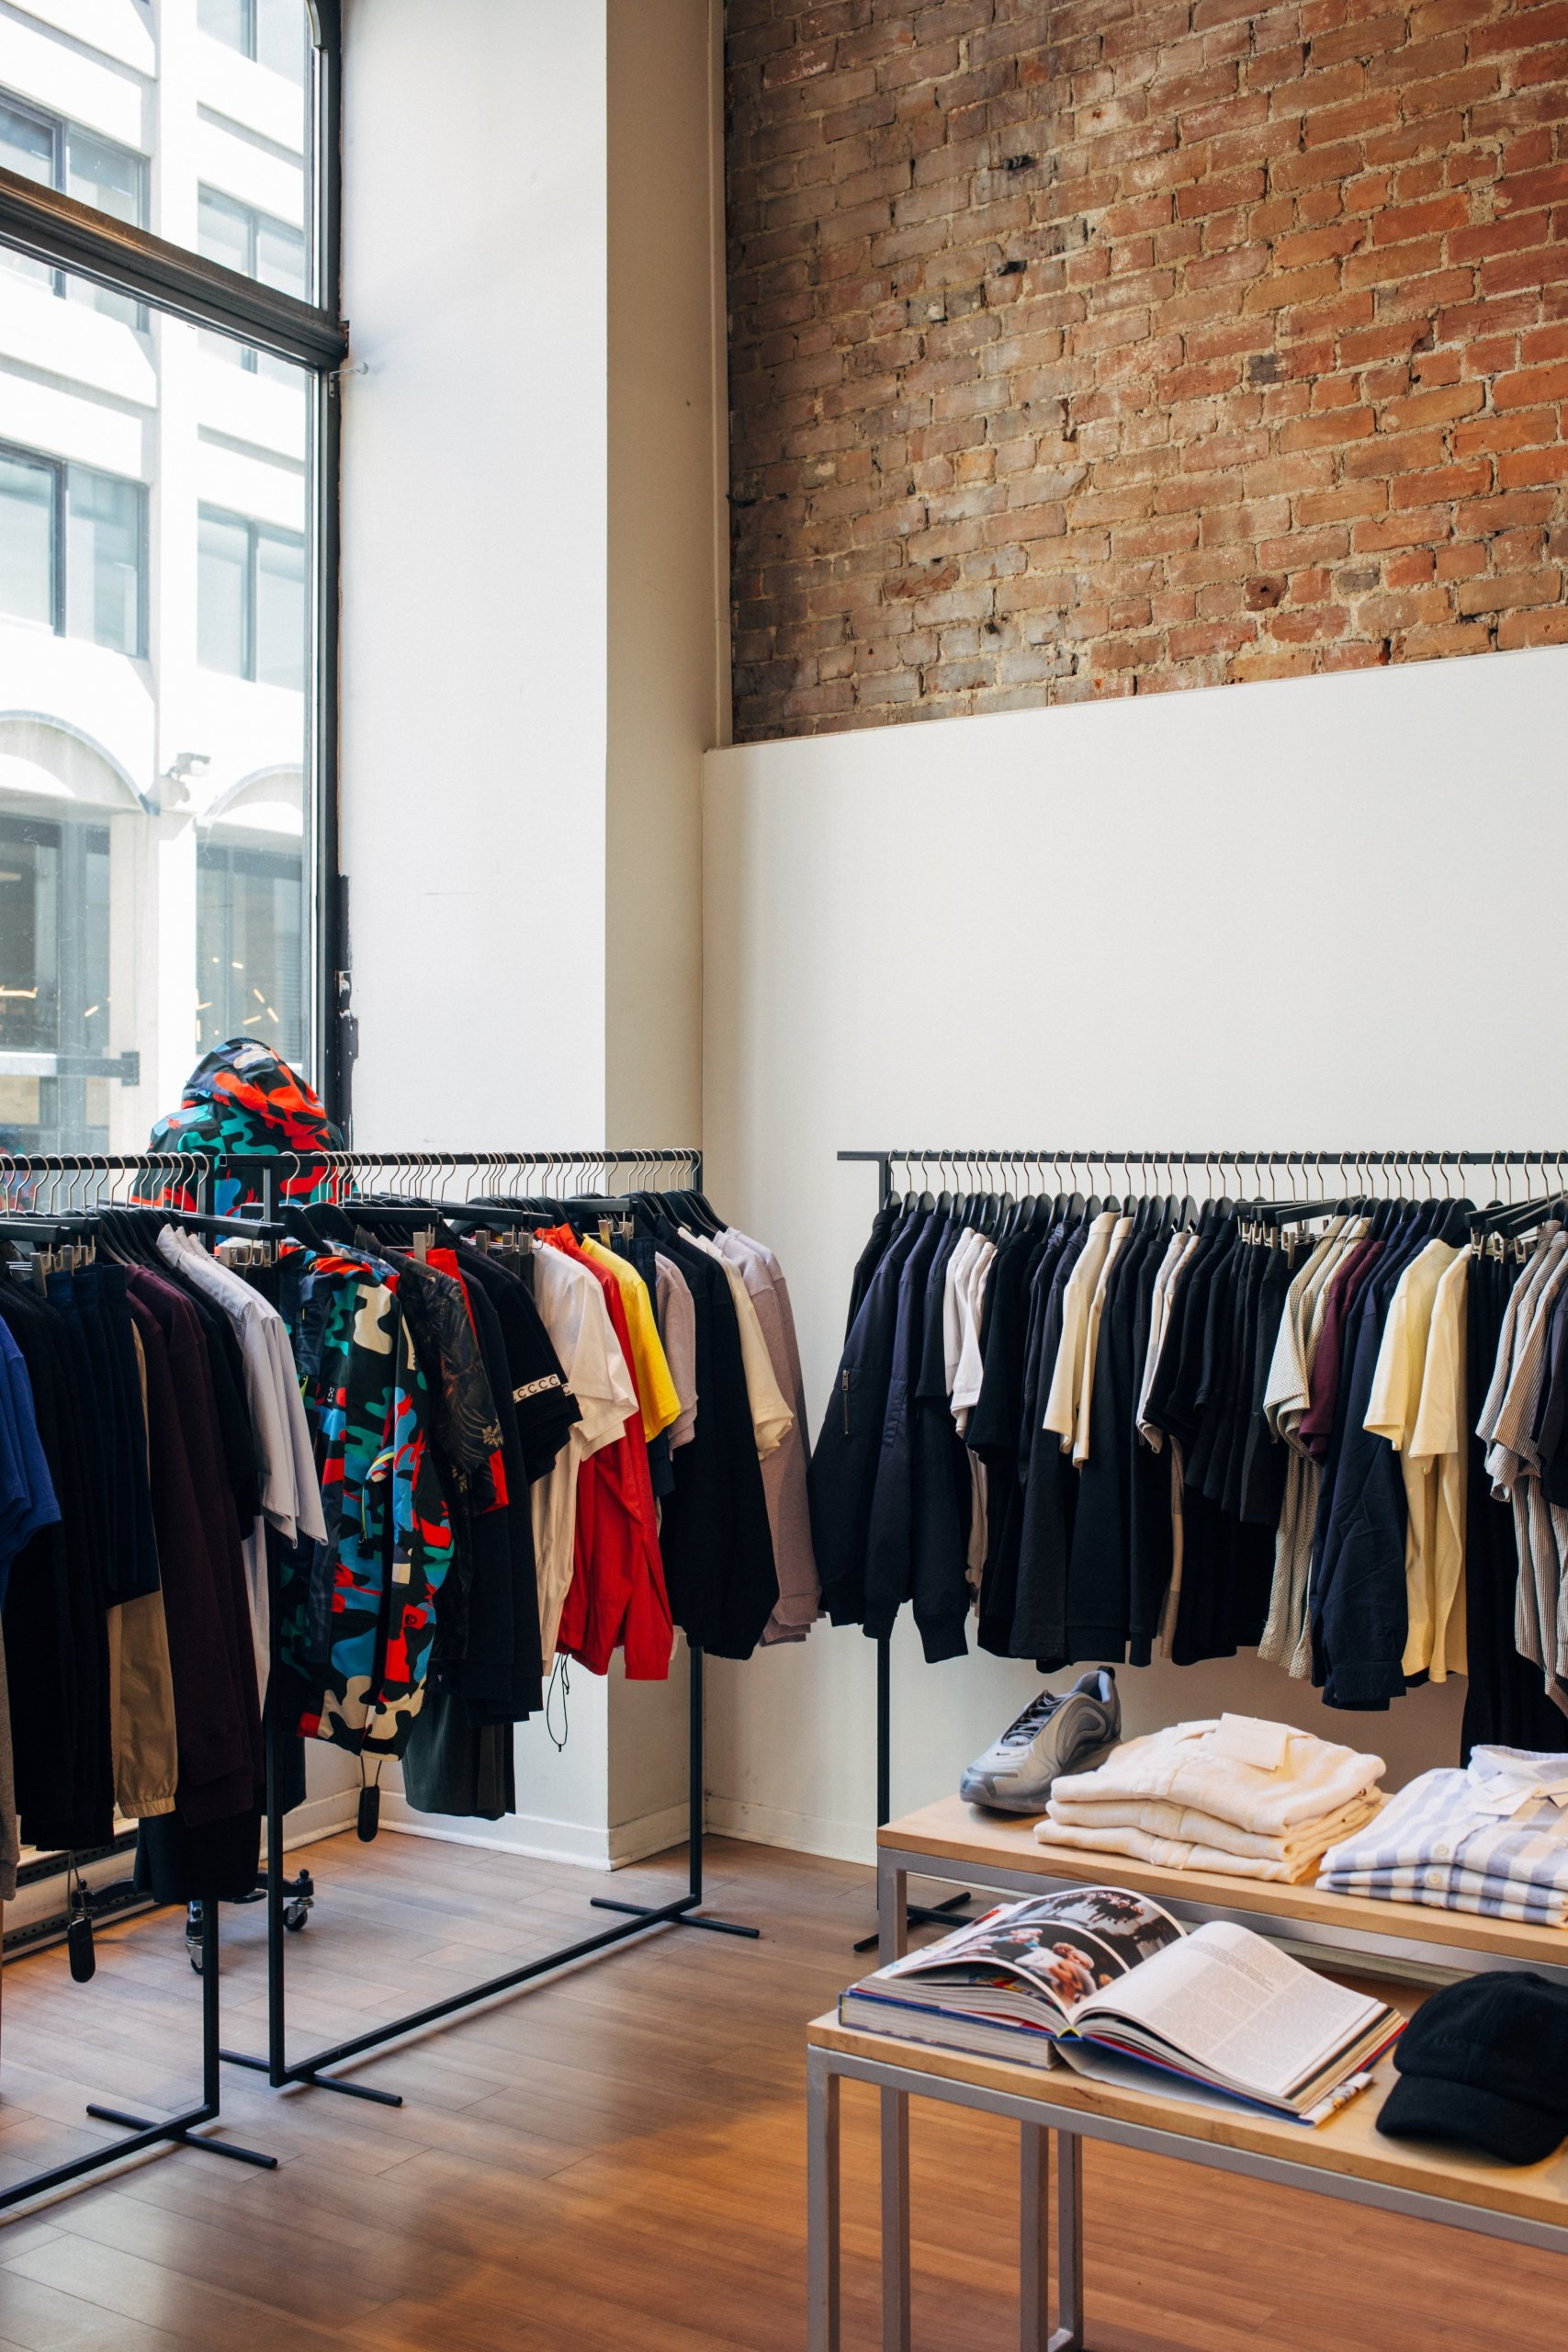 Retail shop with clothing on the rails